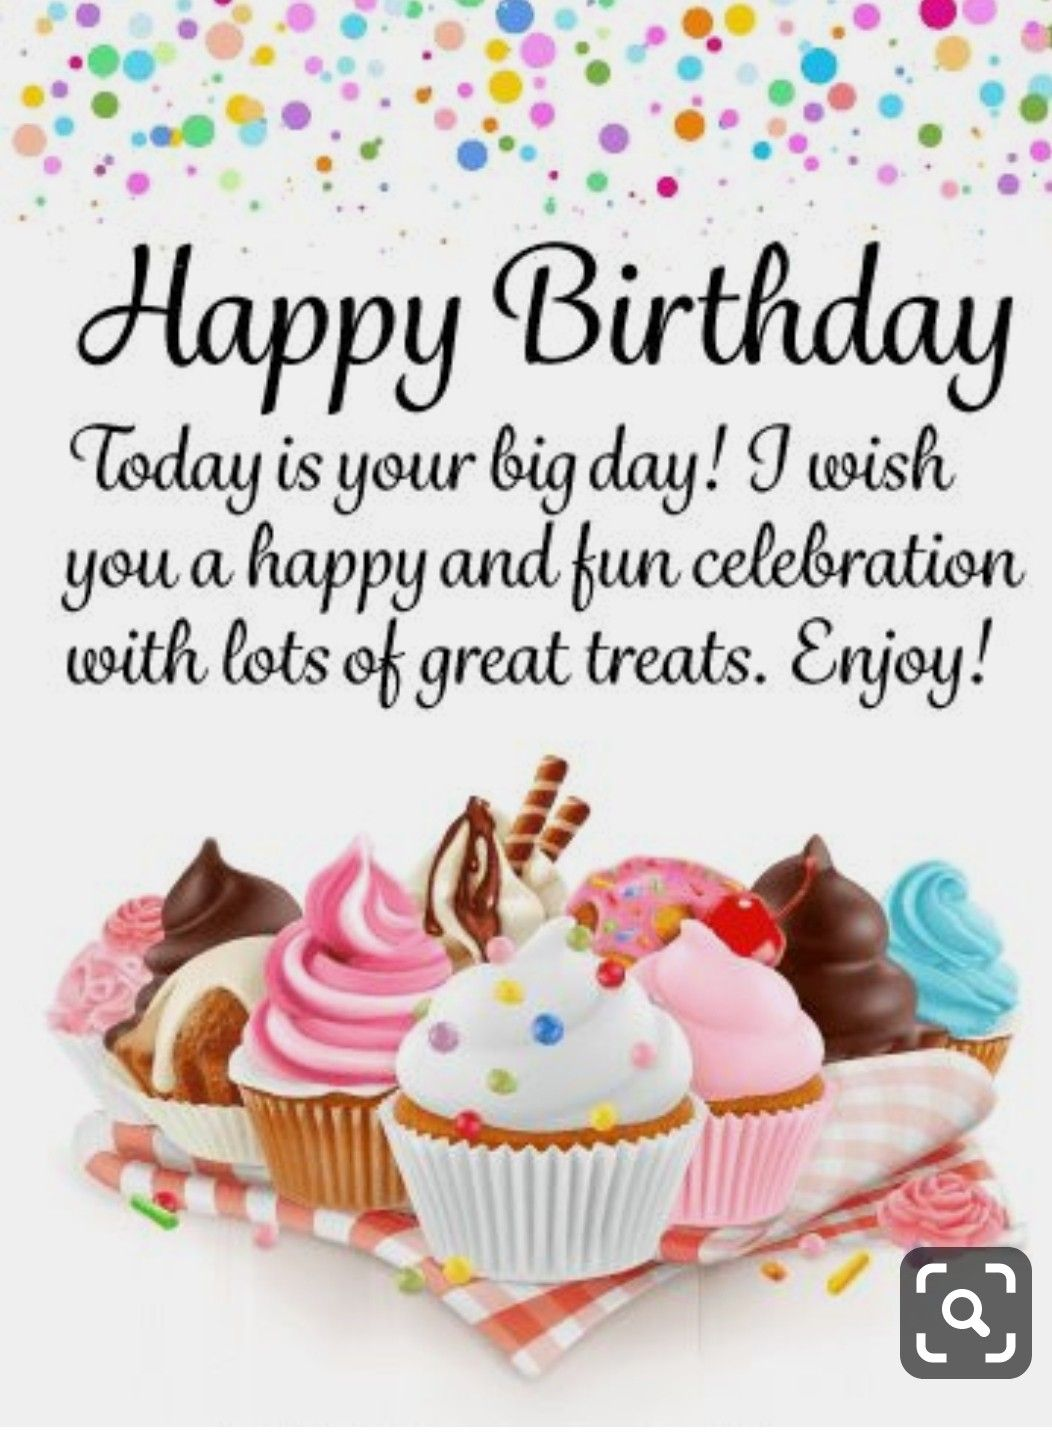 Pin By Peg Hovan On Happy Birthday Cousin Birthday Wishes Greetings Happy Birthday Wishes Images Happy Birthday Wishes Messages